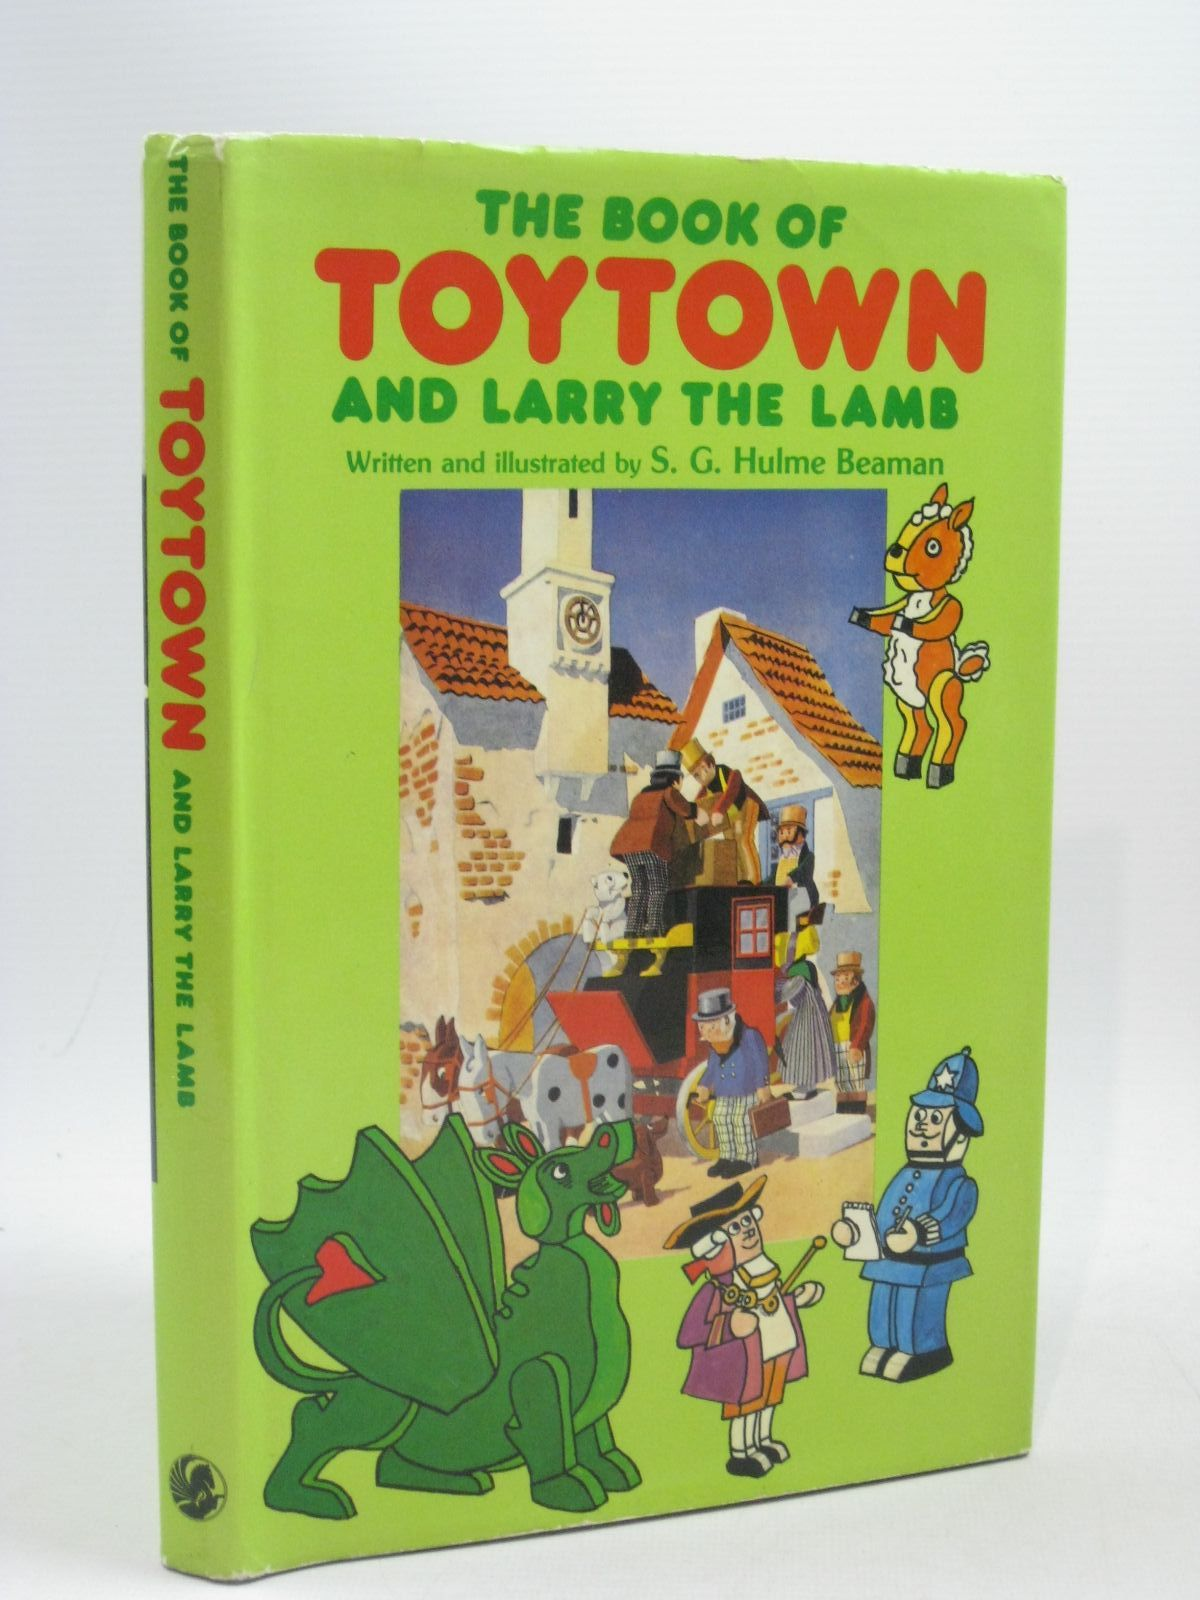 Photo of THE BOOK OF TOYTOWN AND LARRY THE LAMB written by Beaman, S.G. Hulme illustrated by Beaman, S.G. Hulme published by George G. Harrap & Co. Ltd. (STOCK CODE: 1314837)  for sale by Stella & Rose's Books